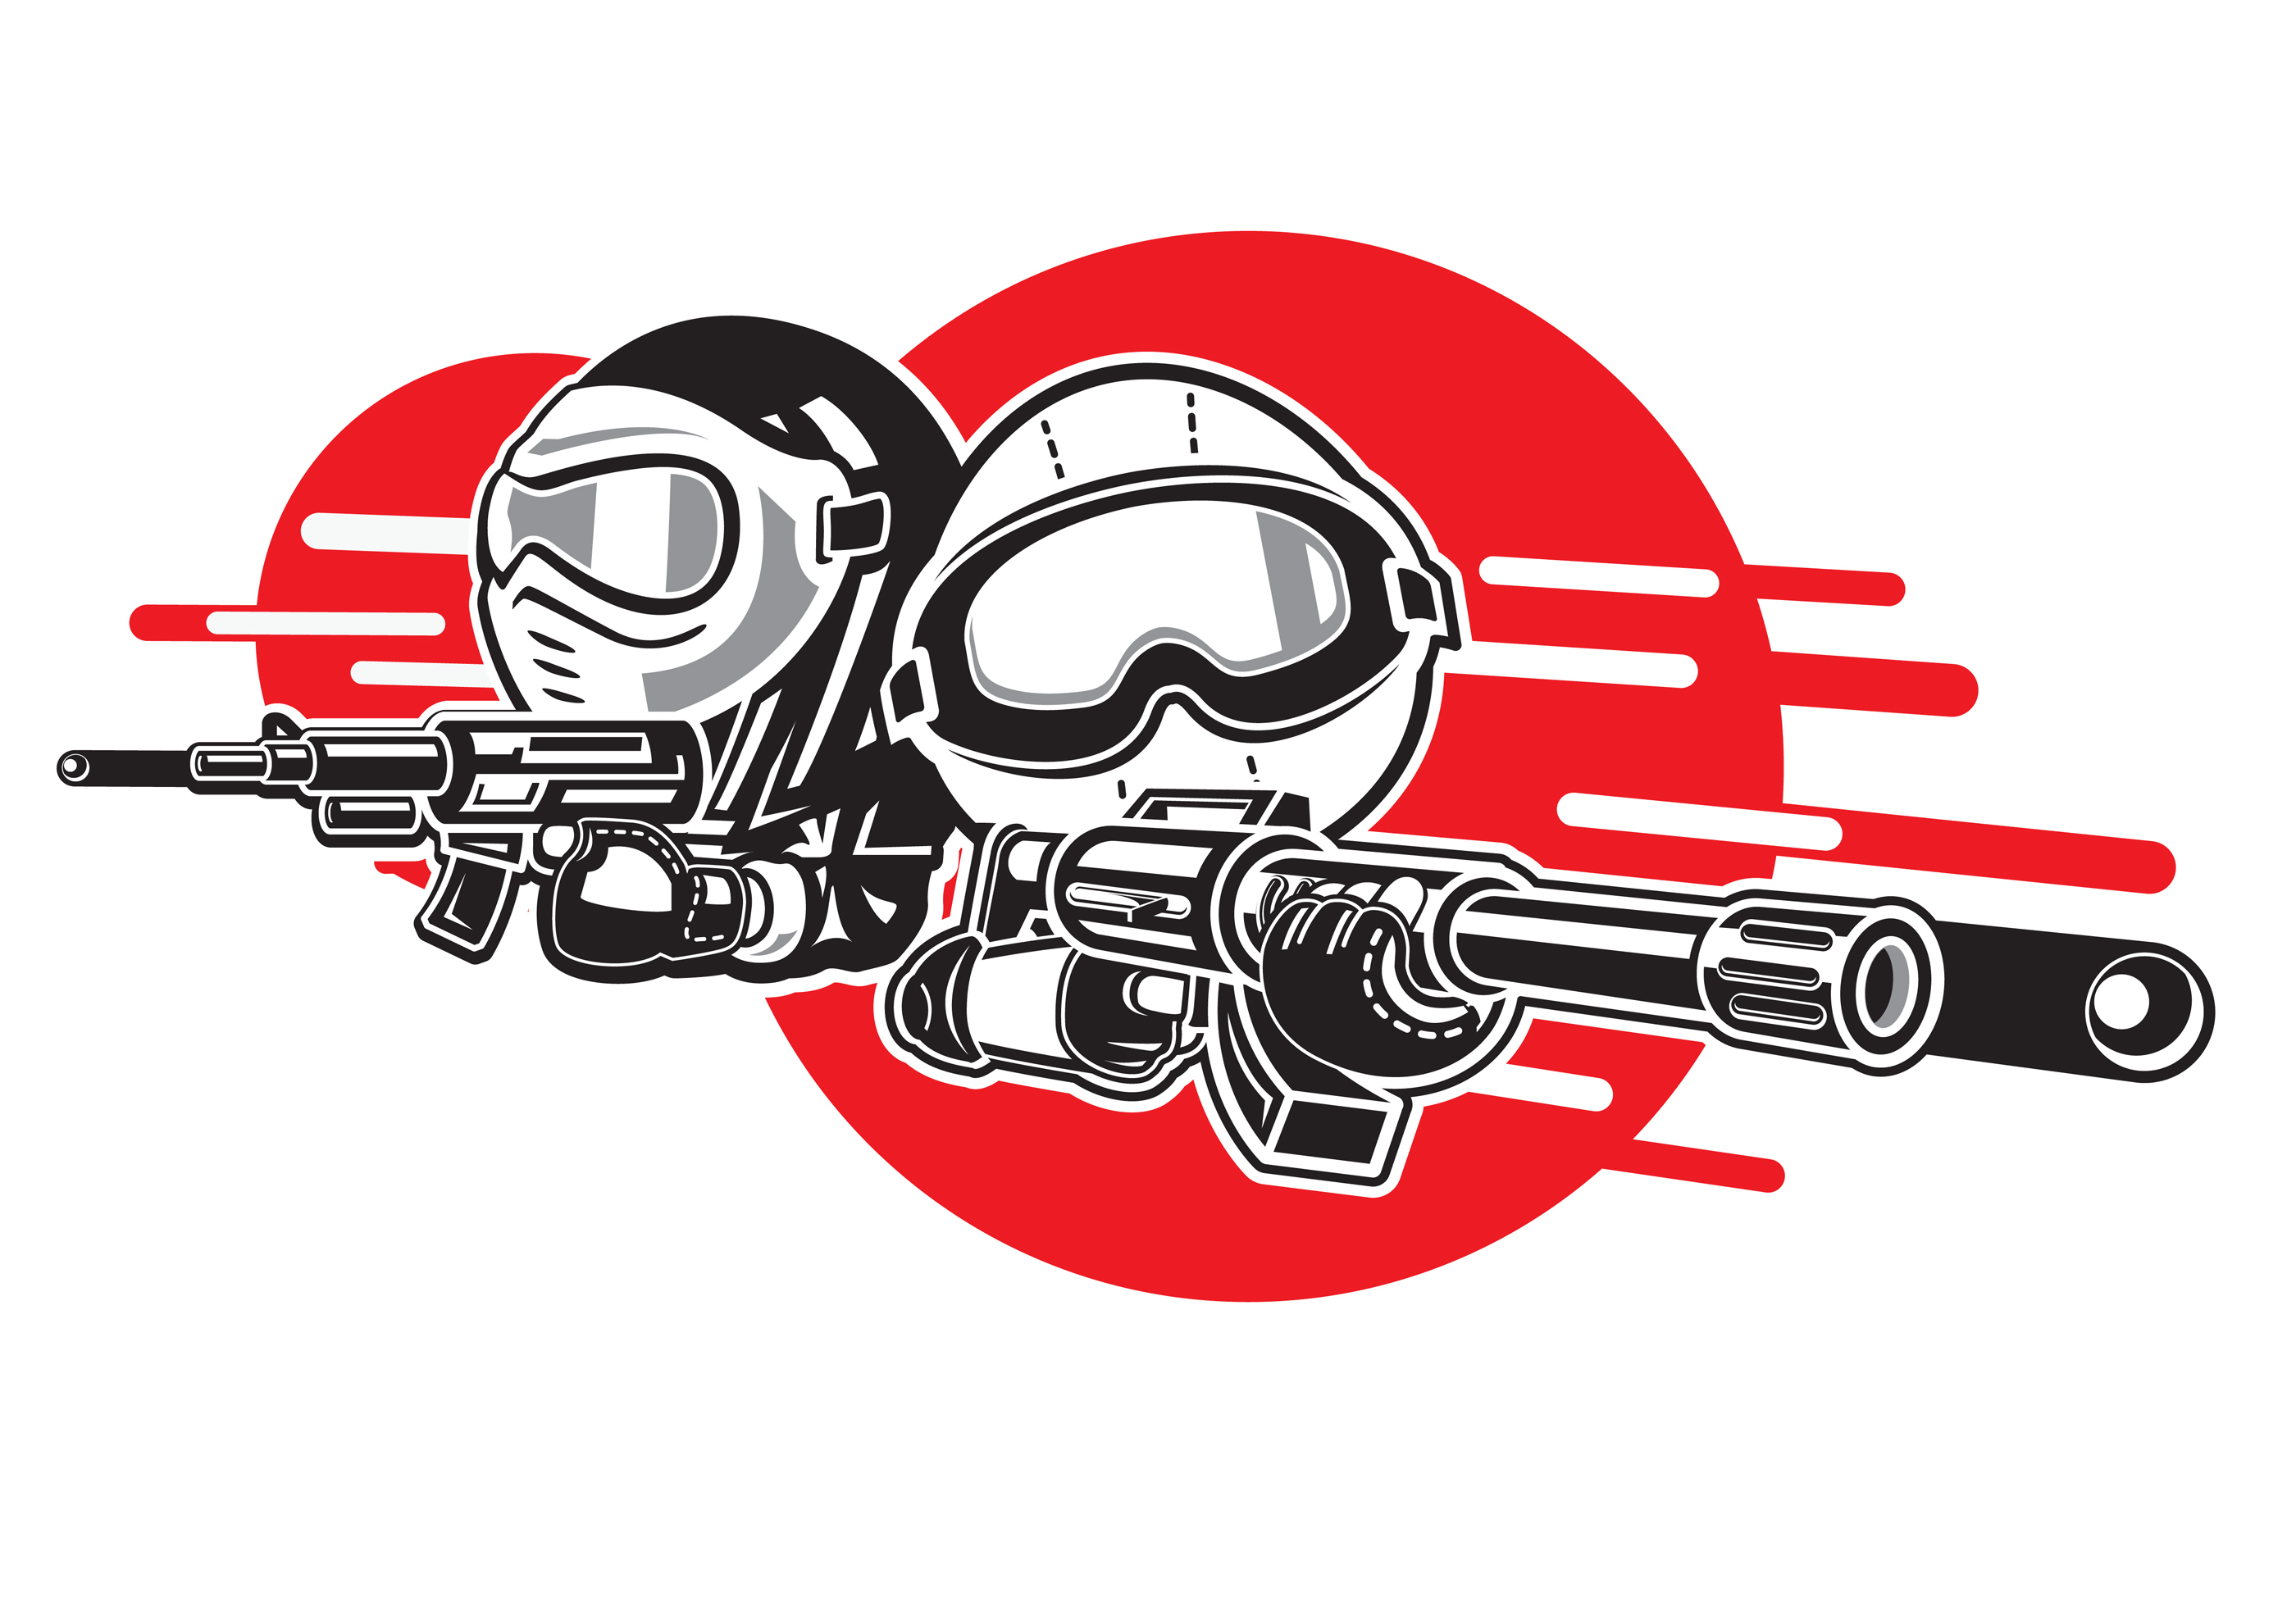 Les Petits Guerriers AirSoft